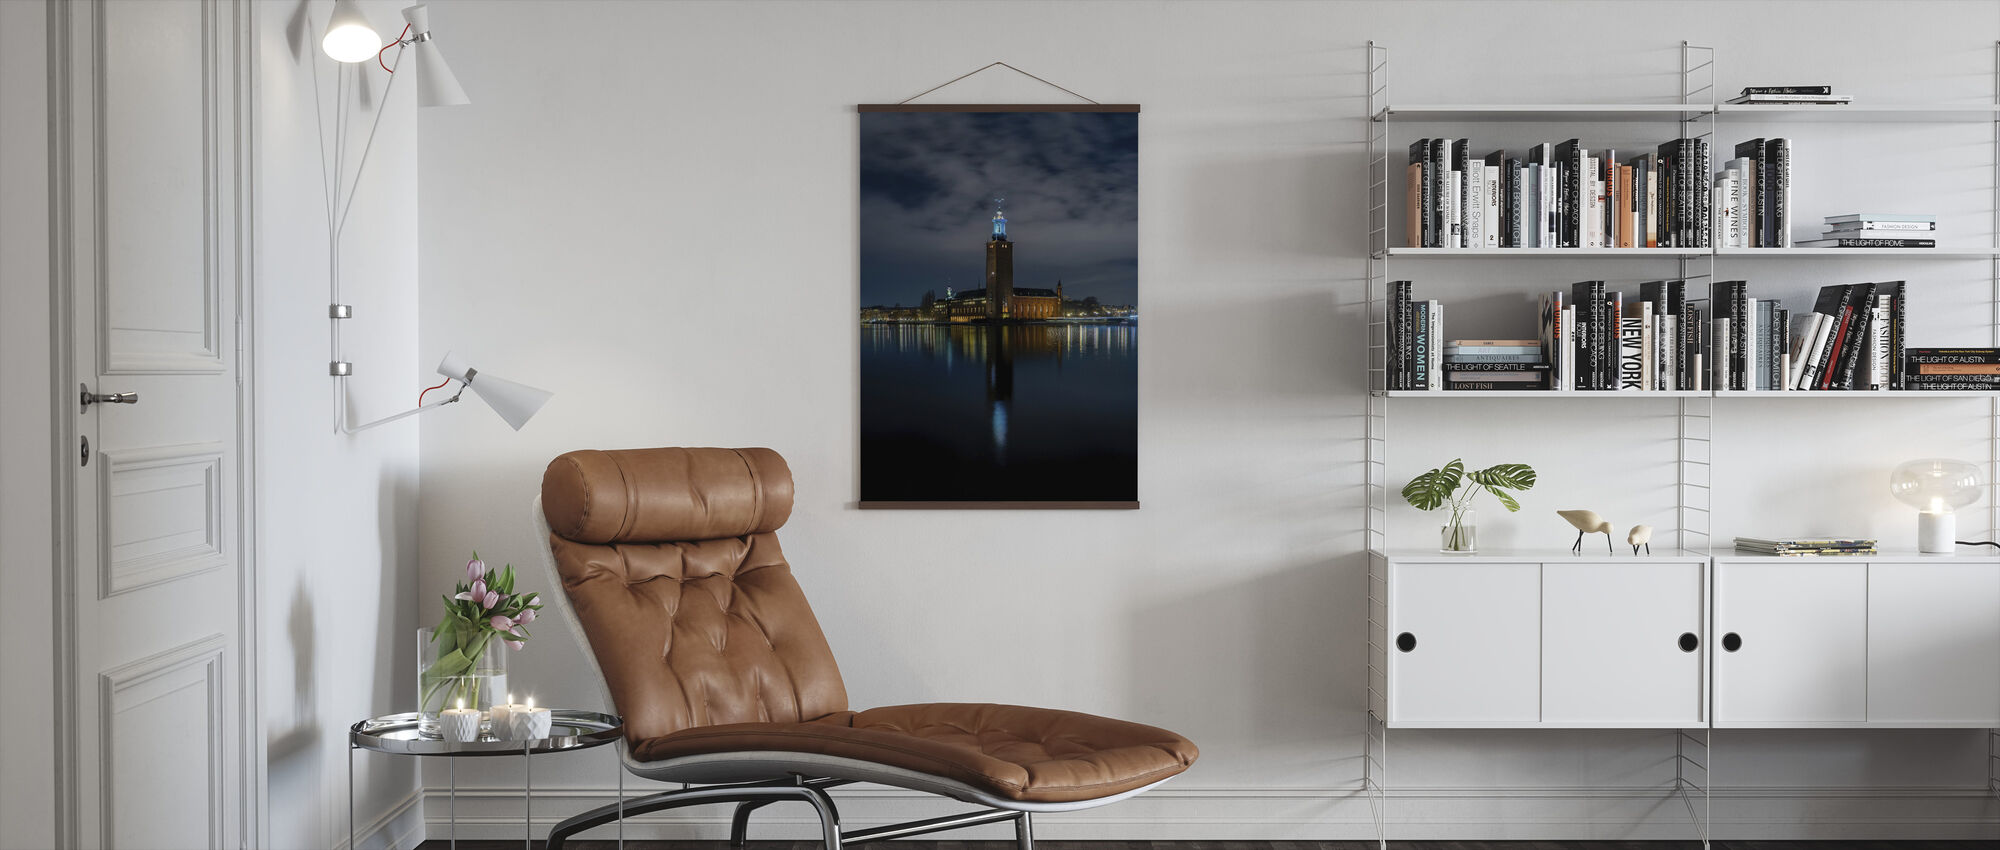 Stockholm City Hall - Poster - Living Room